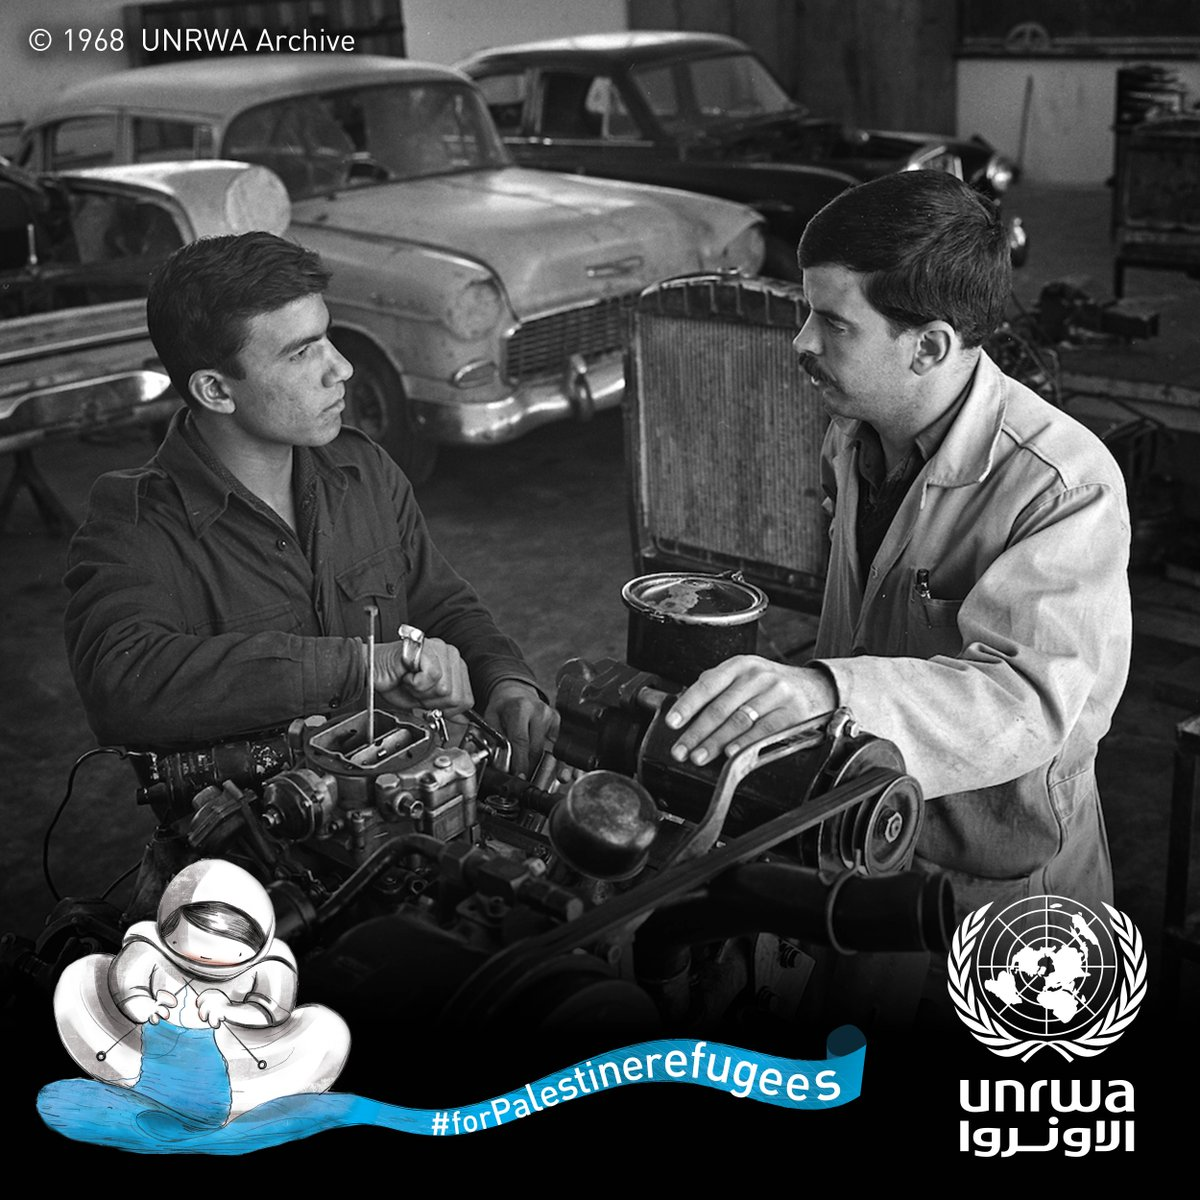 #Throwback to 1968: UNRWA provides #vocational training for #Palestine #refugees. Archival photo from #Damascus Training Centre in #Syria.<br>http://pic.twitter.com/jSZtSSDJIF